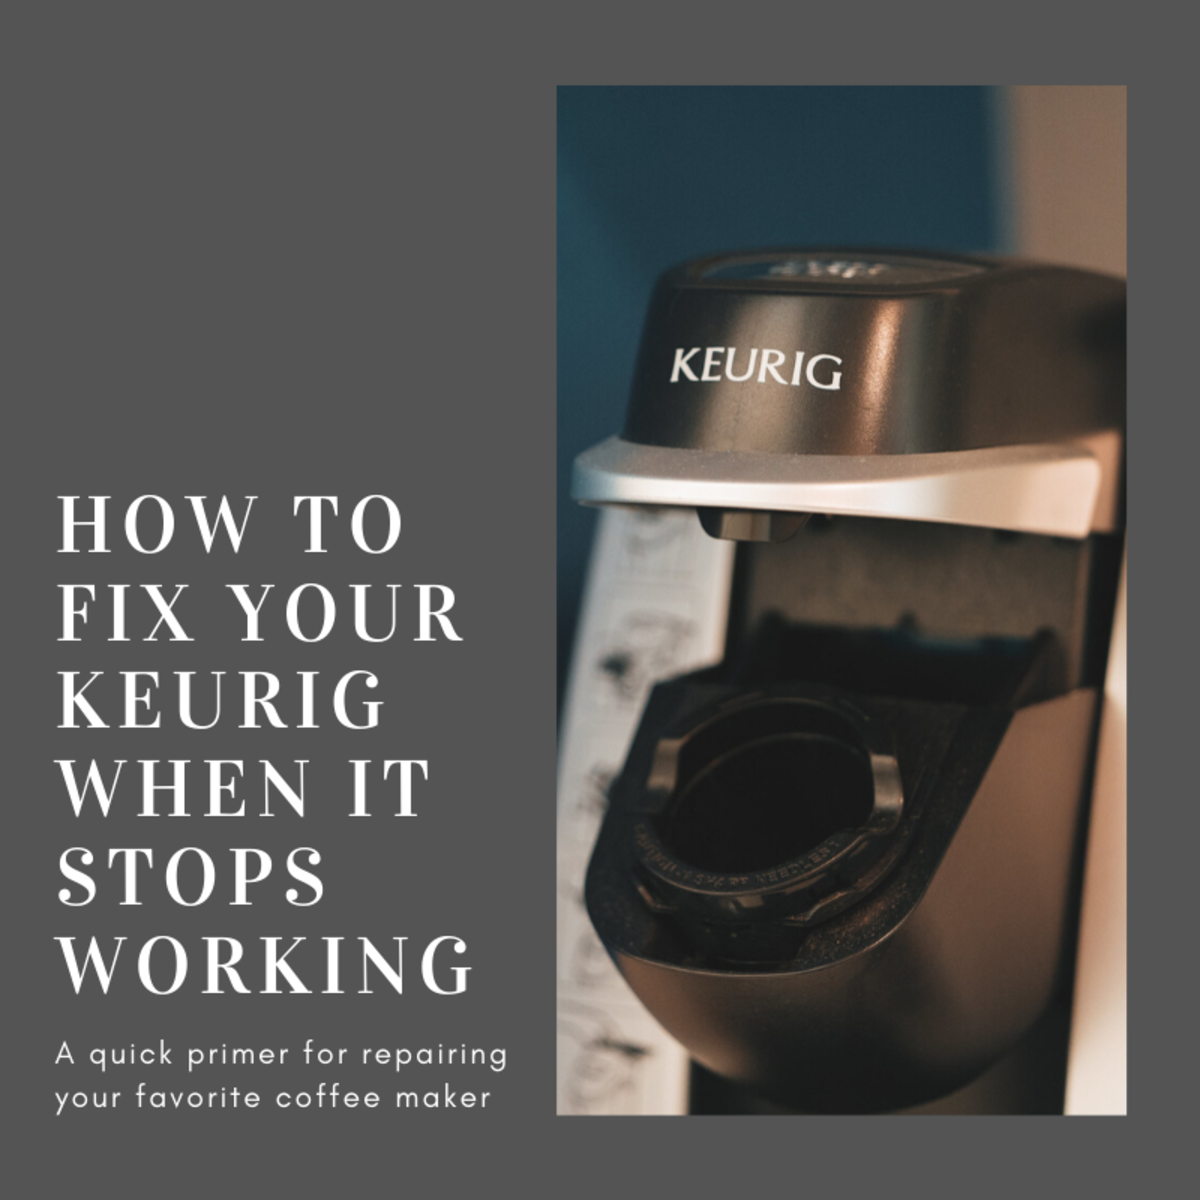 How To Fix Your Keurig If It Stops Brewing!